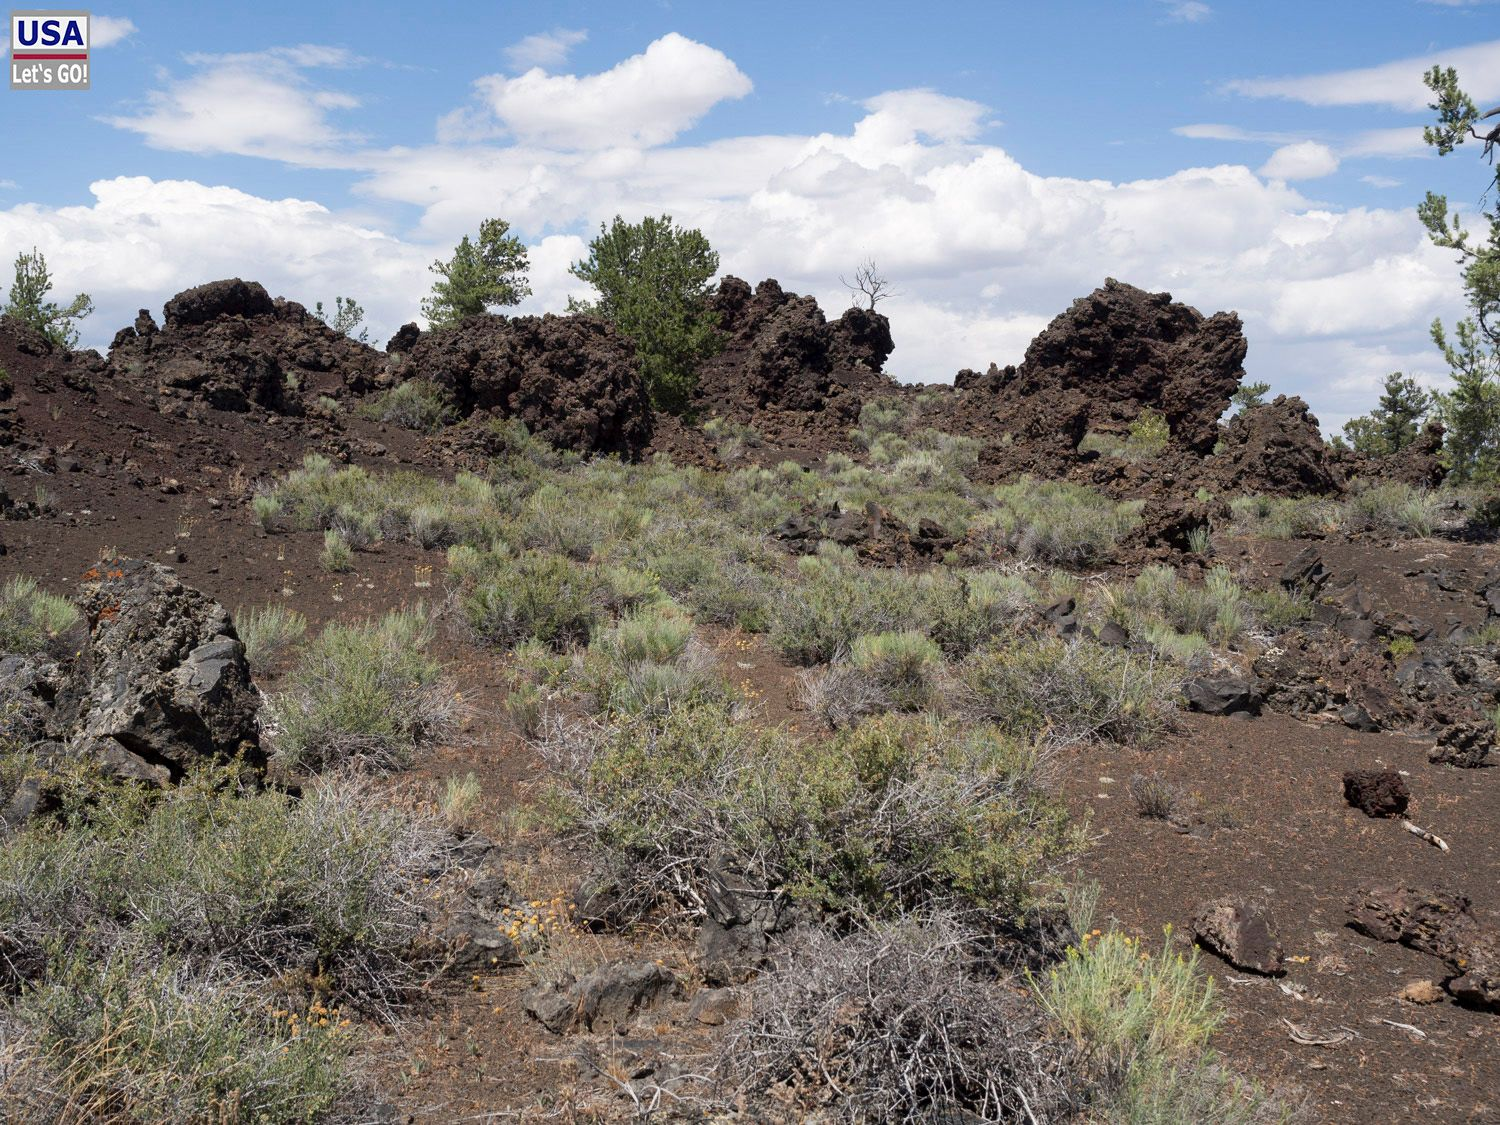 North Lava Flow Craters of the Moon